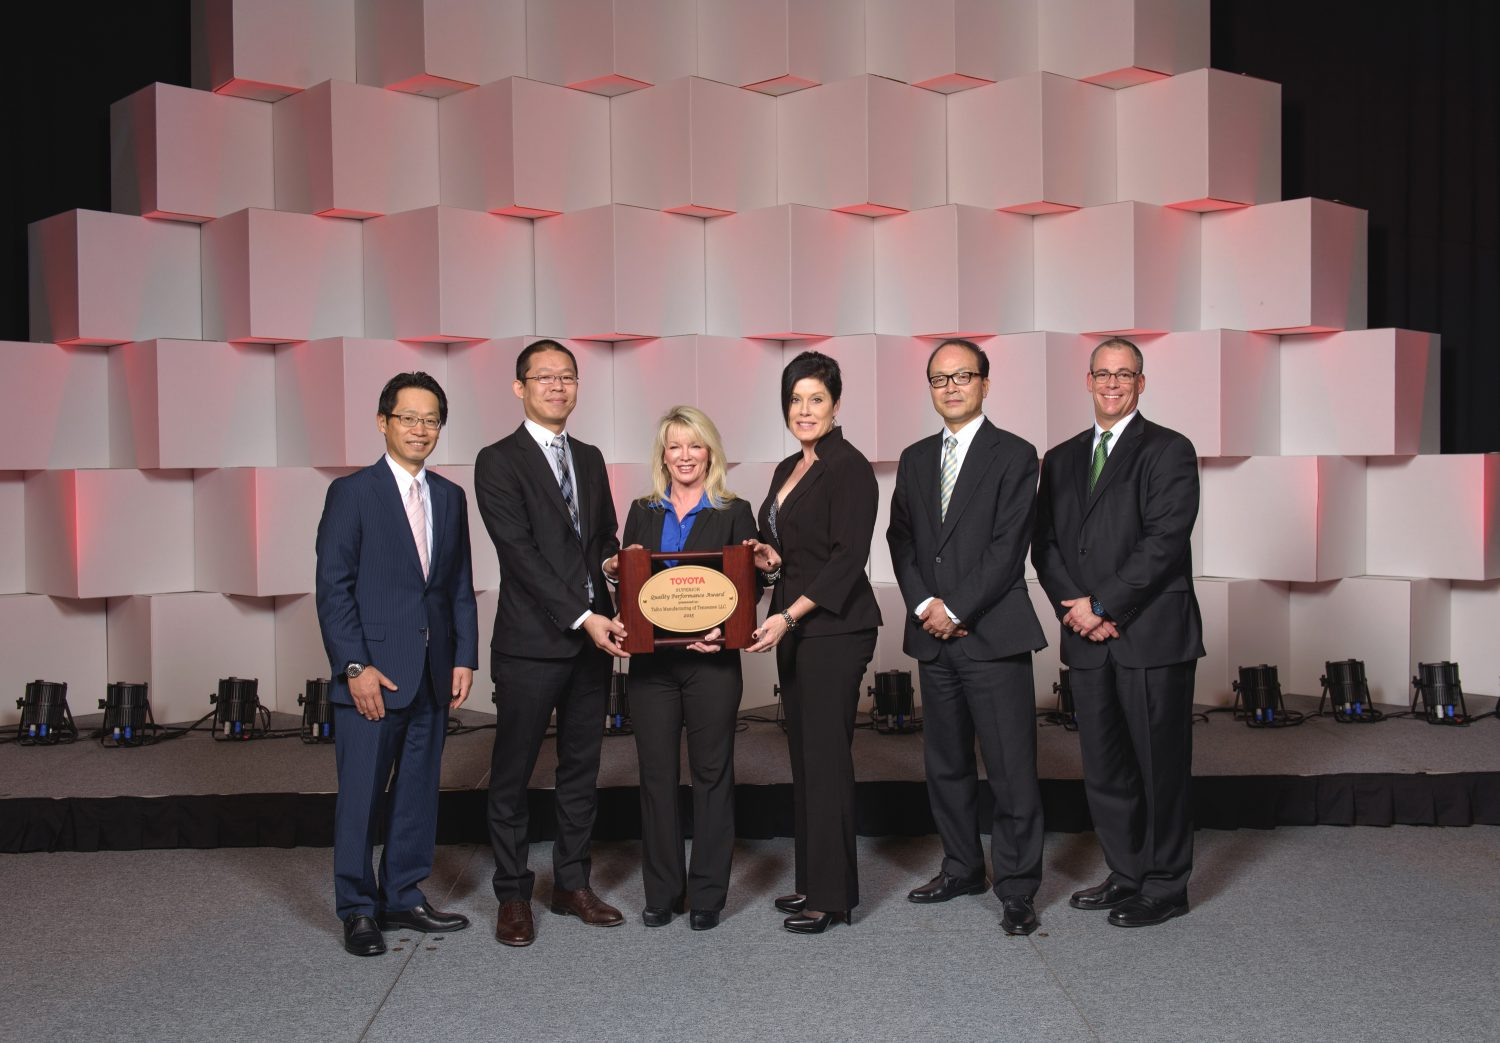 Toyota Morristown Tn >> Toyota Suppliers Recognized for Superior Performance At Annual Event - Toyota USA Newsroom